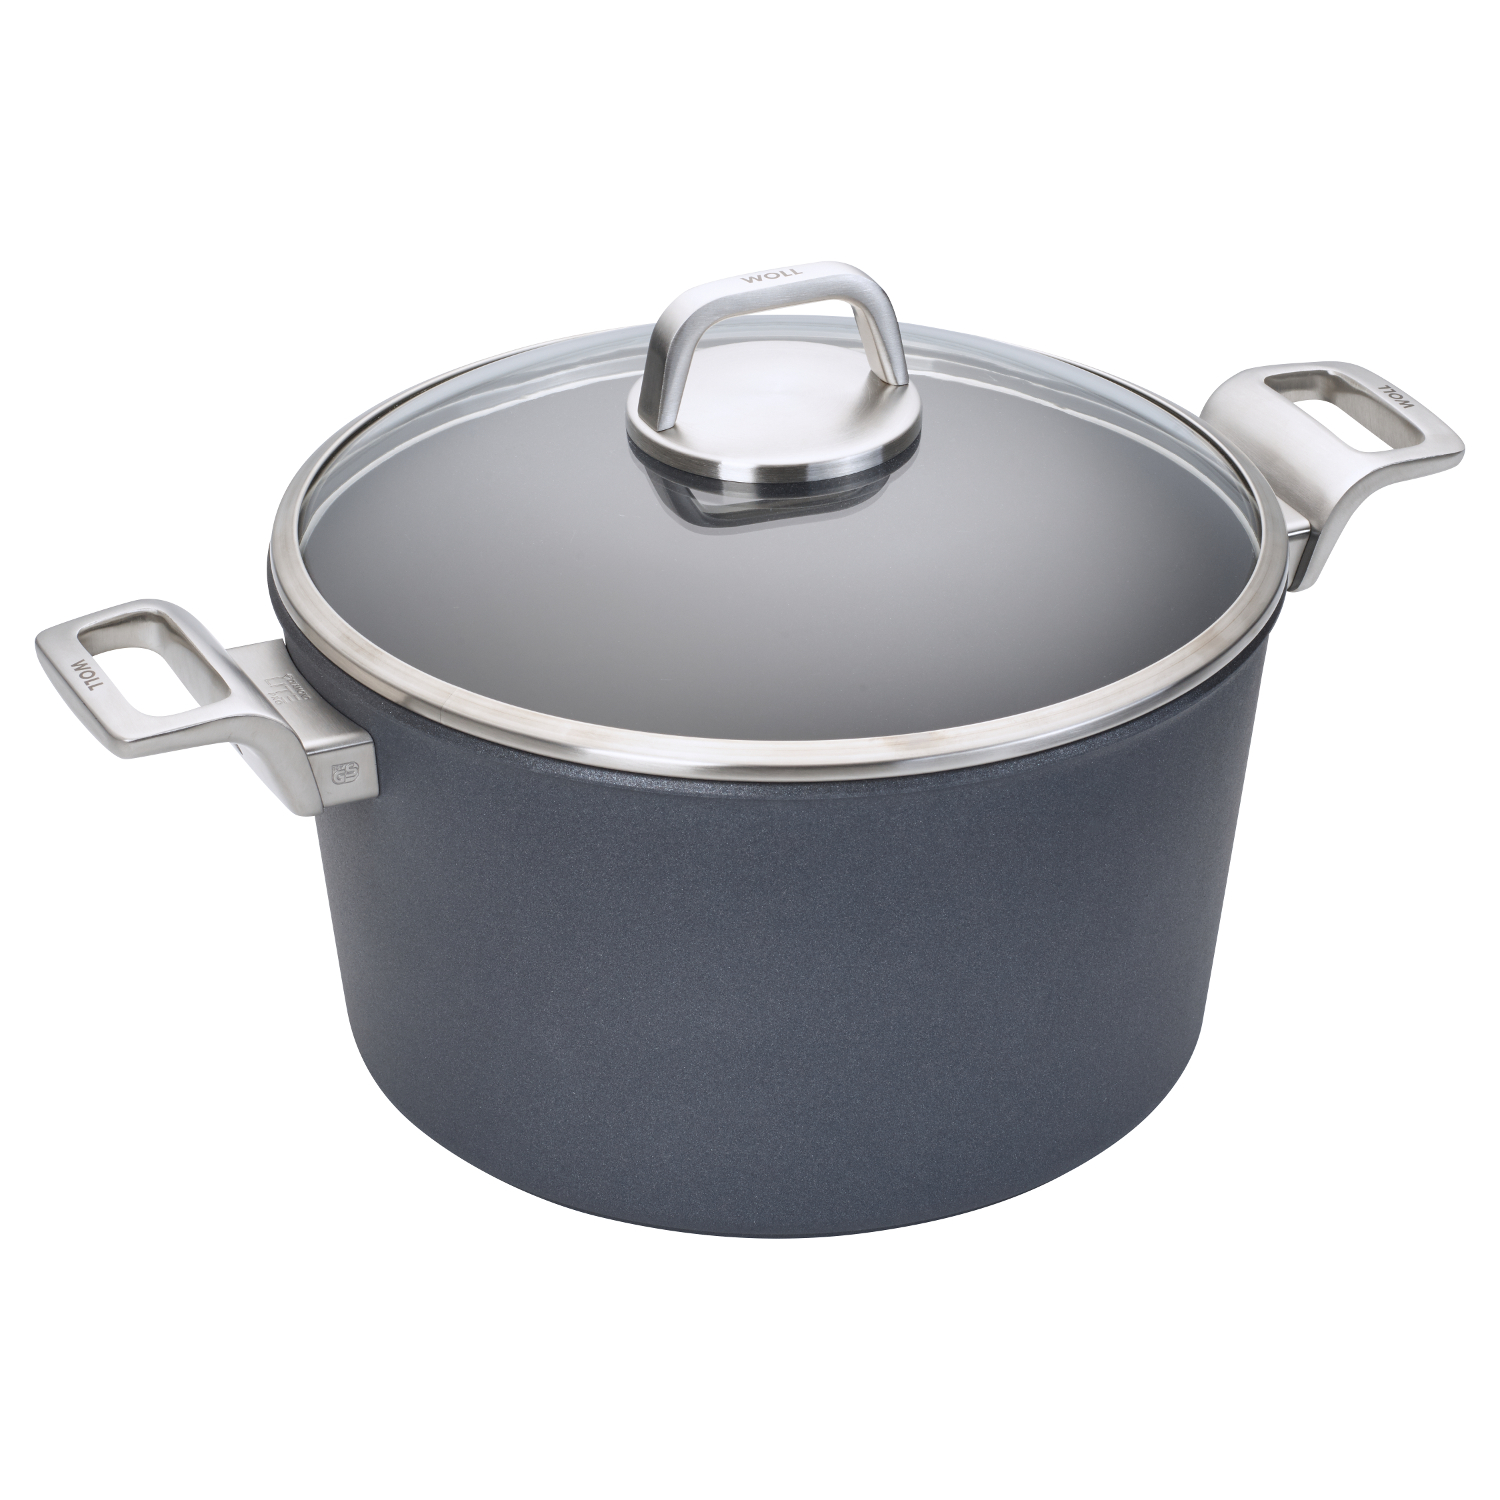 Woll Diamond Lite Pro 3.2 Quart Induction Stockpot with Lid